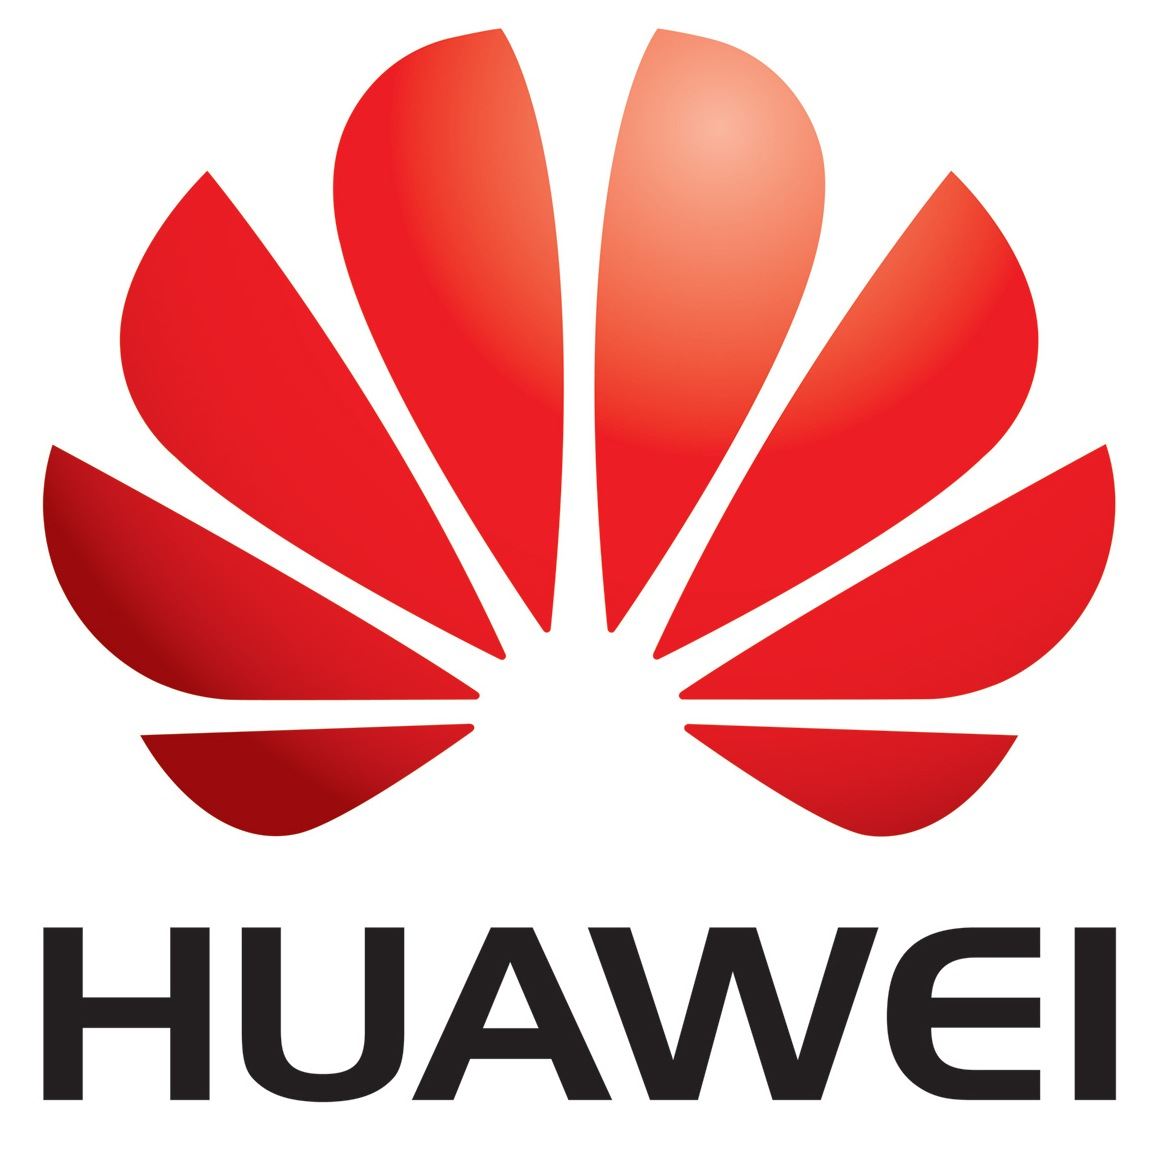 huawei-partners-with-vodafone-for-five-year-project-spring-deployment-in-europe-and-africa